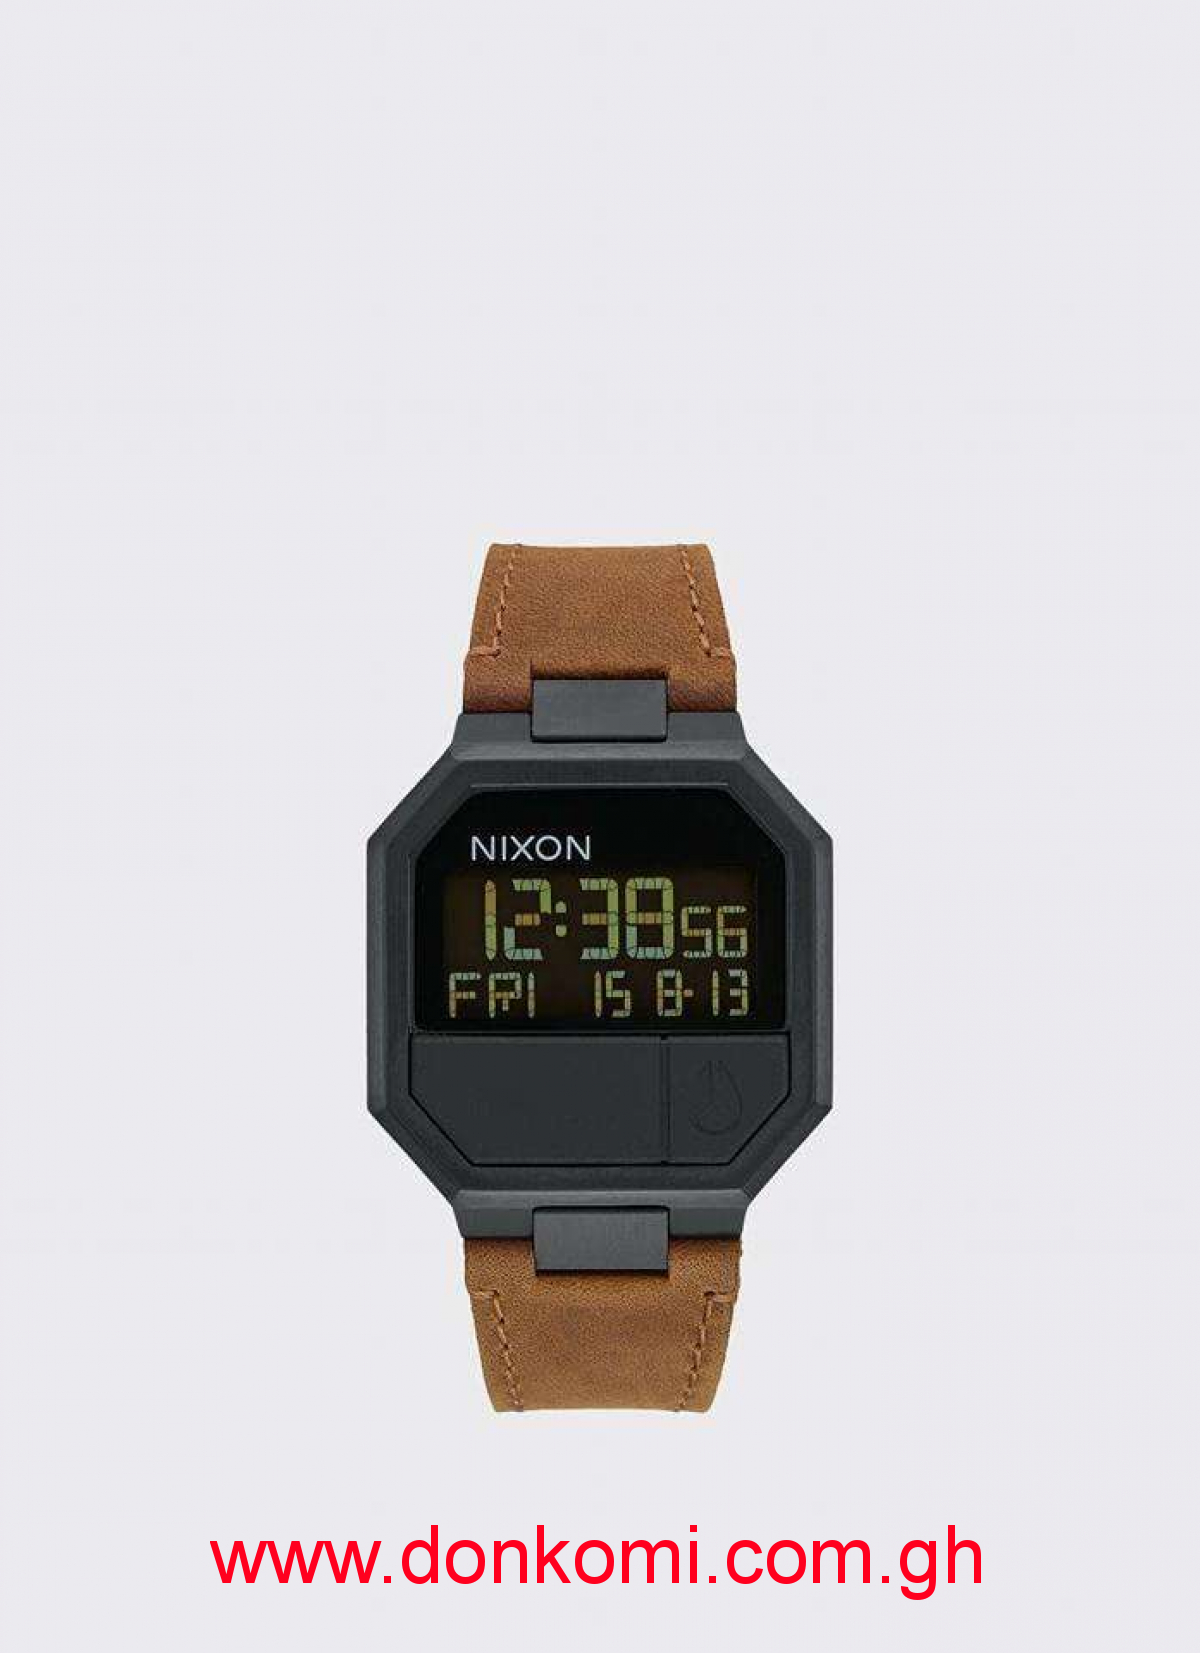 Nixon Re-run and Time-teller watches